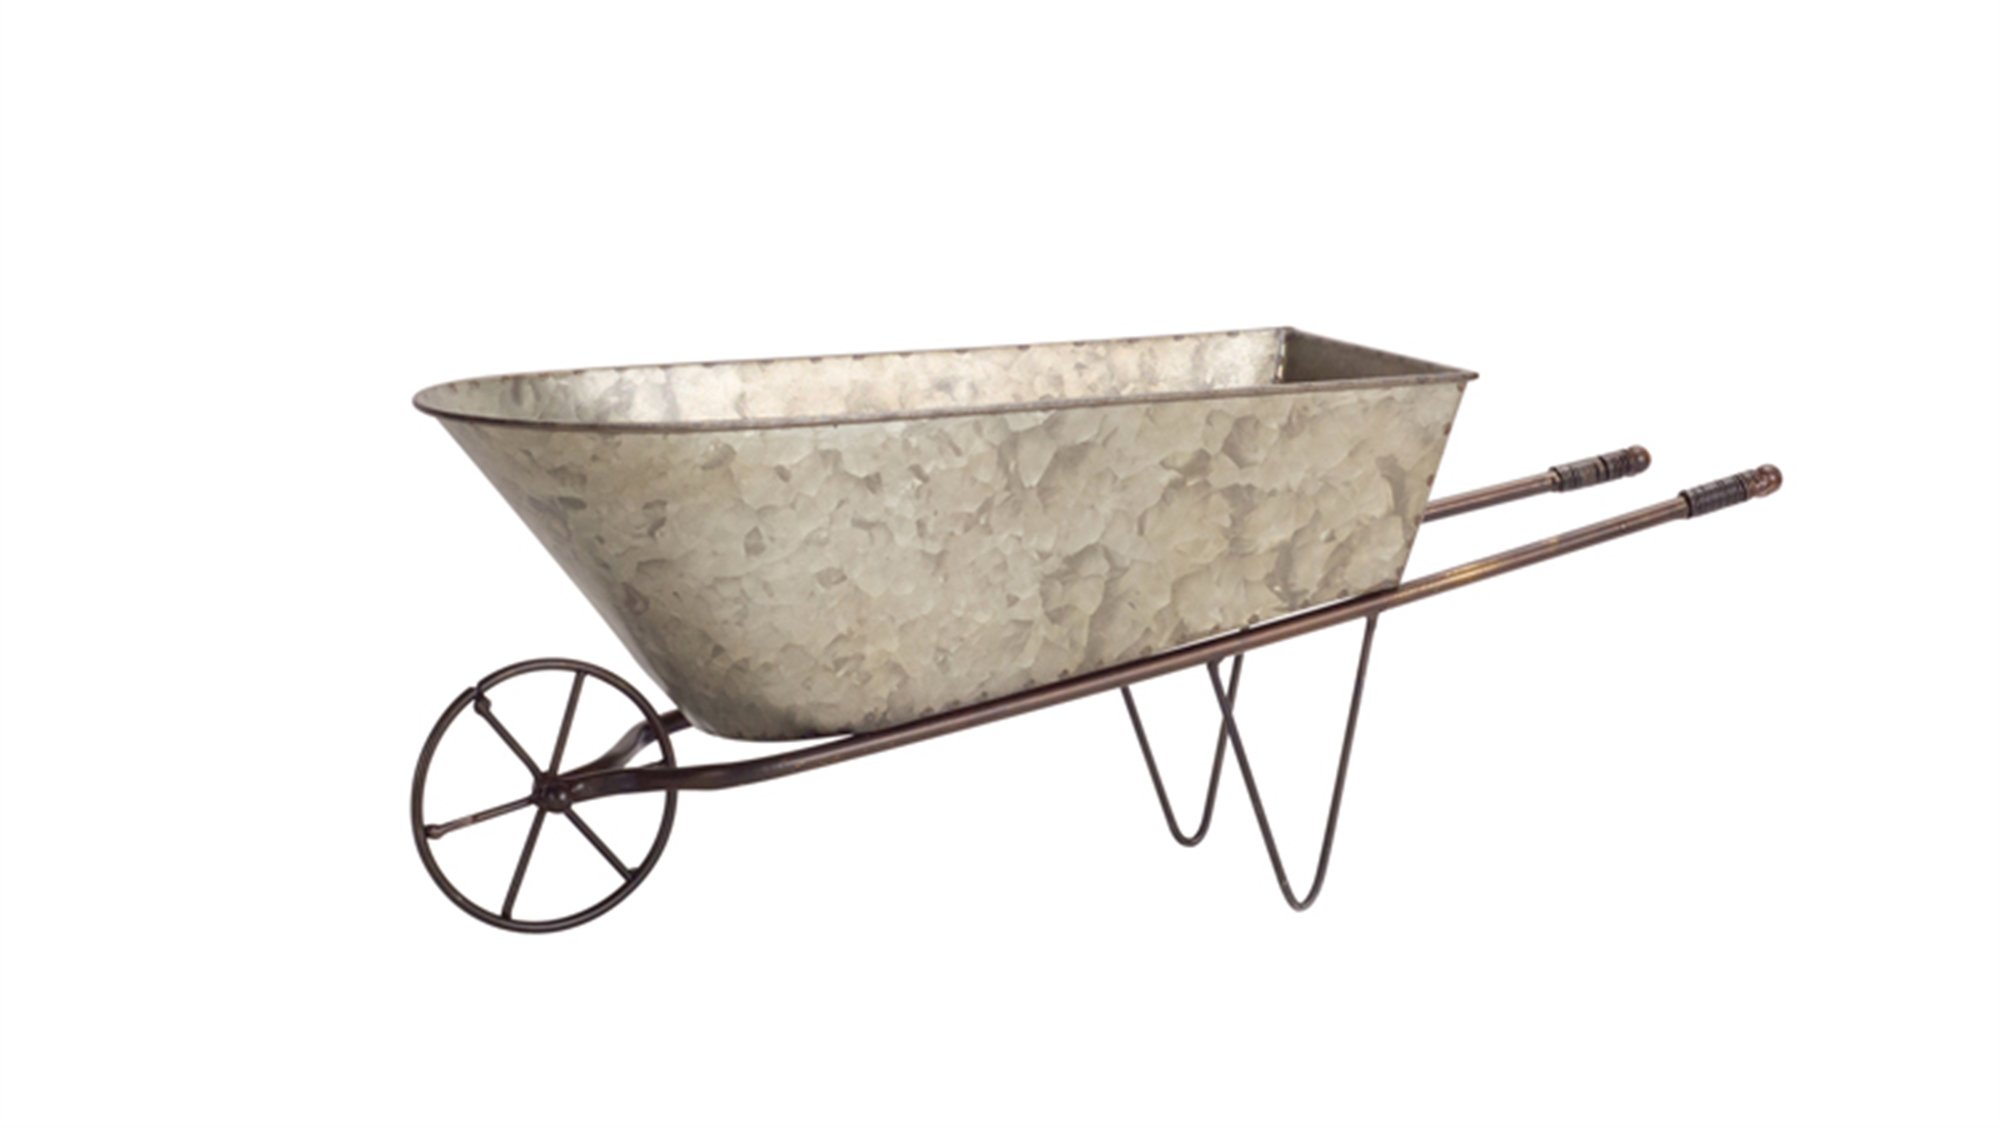 Diva At Home Set of 2 Country Rustic Galvanized Metal Wheelbarrow Planters 20.5''